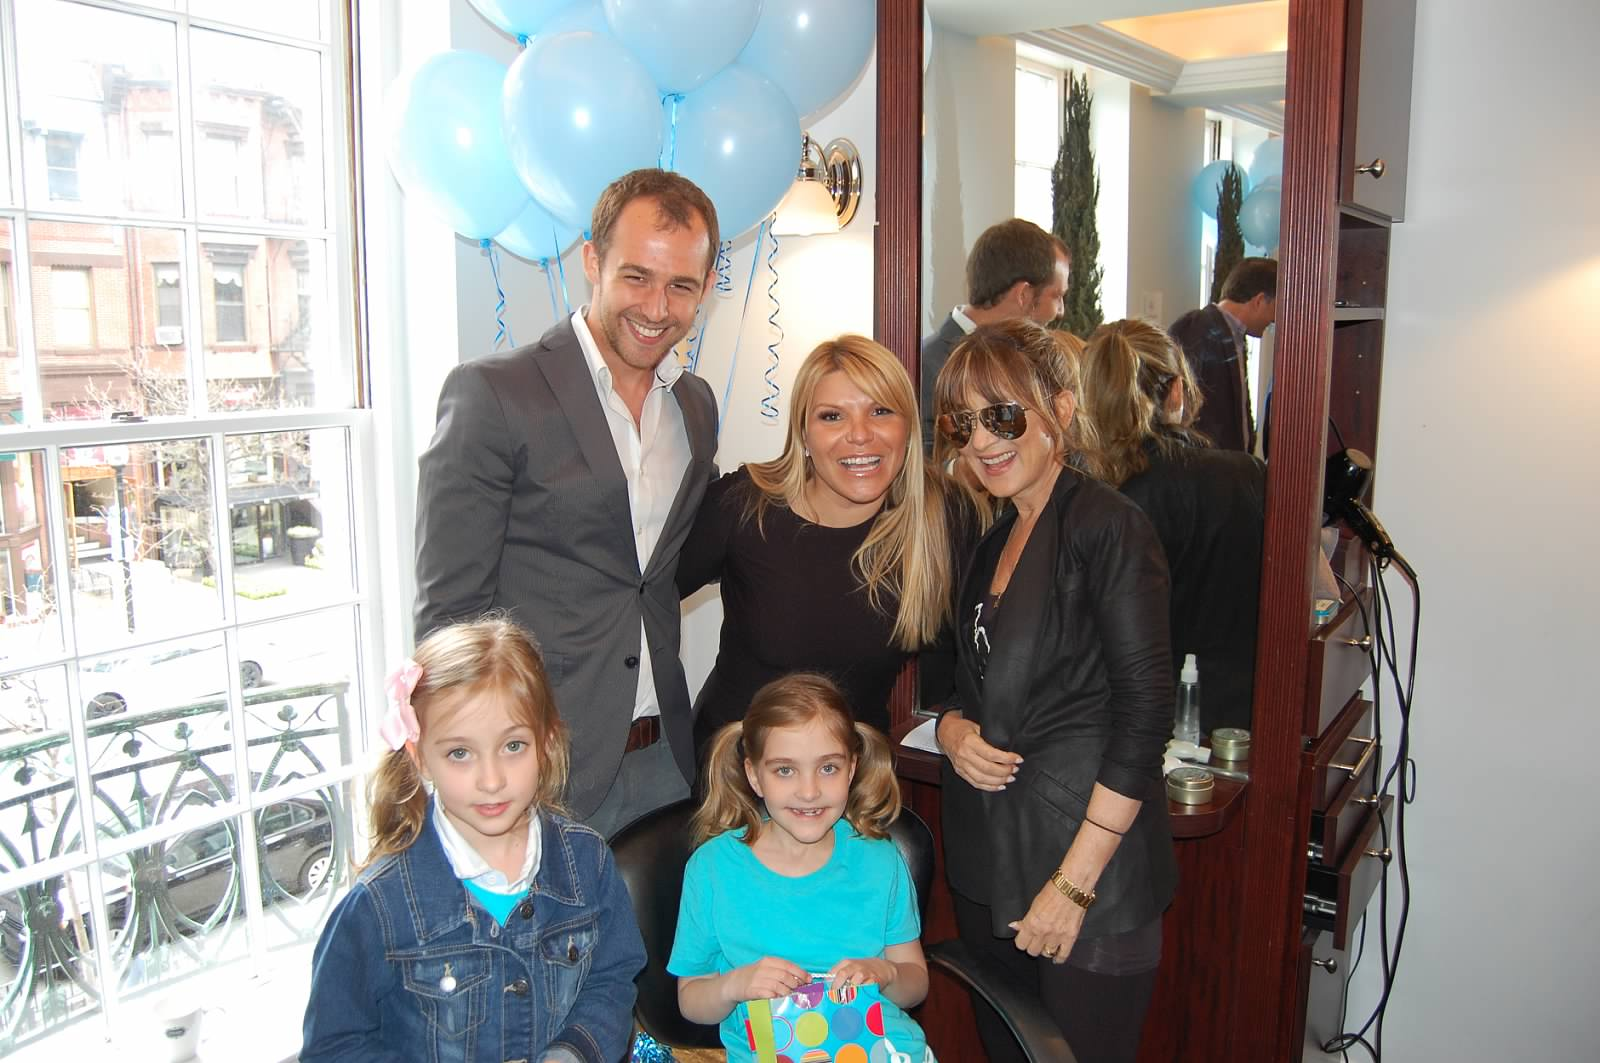 Join HairRaising in Helping Sick Children During National Cut-A-Thon